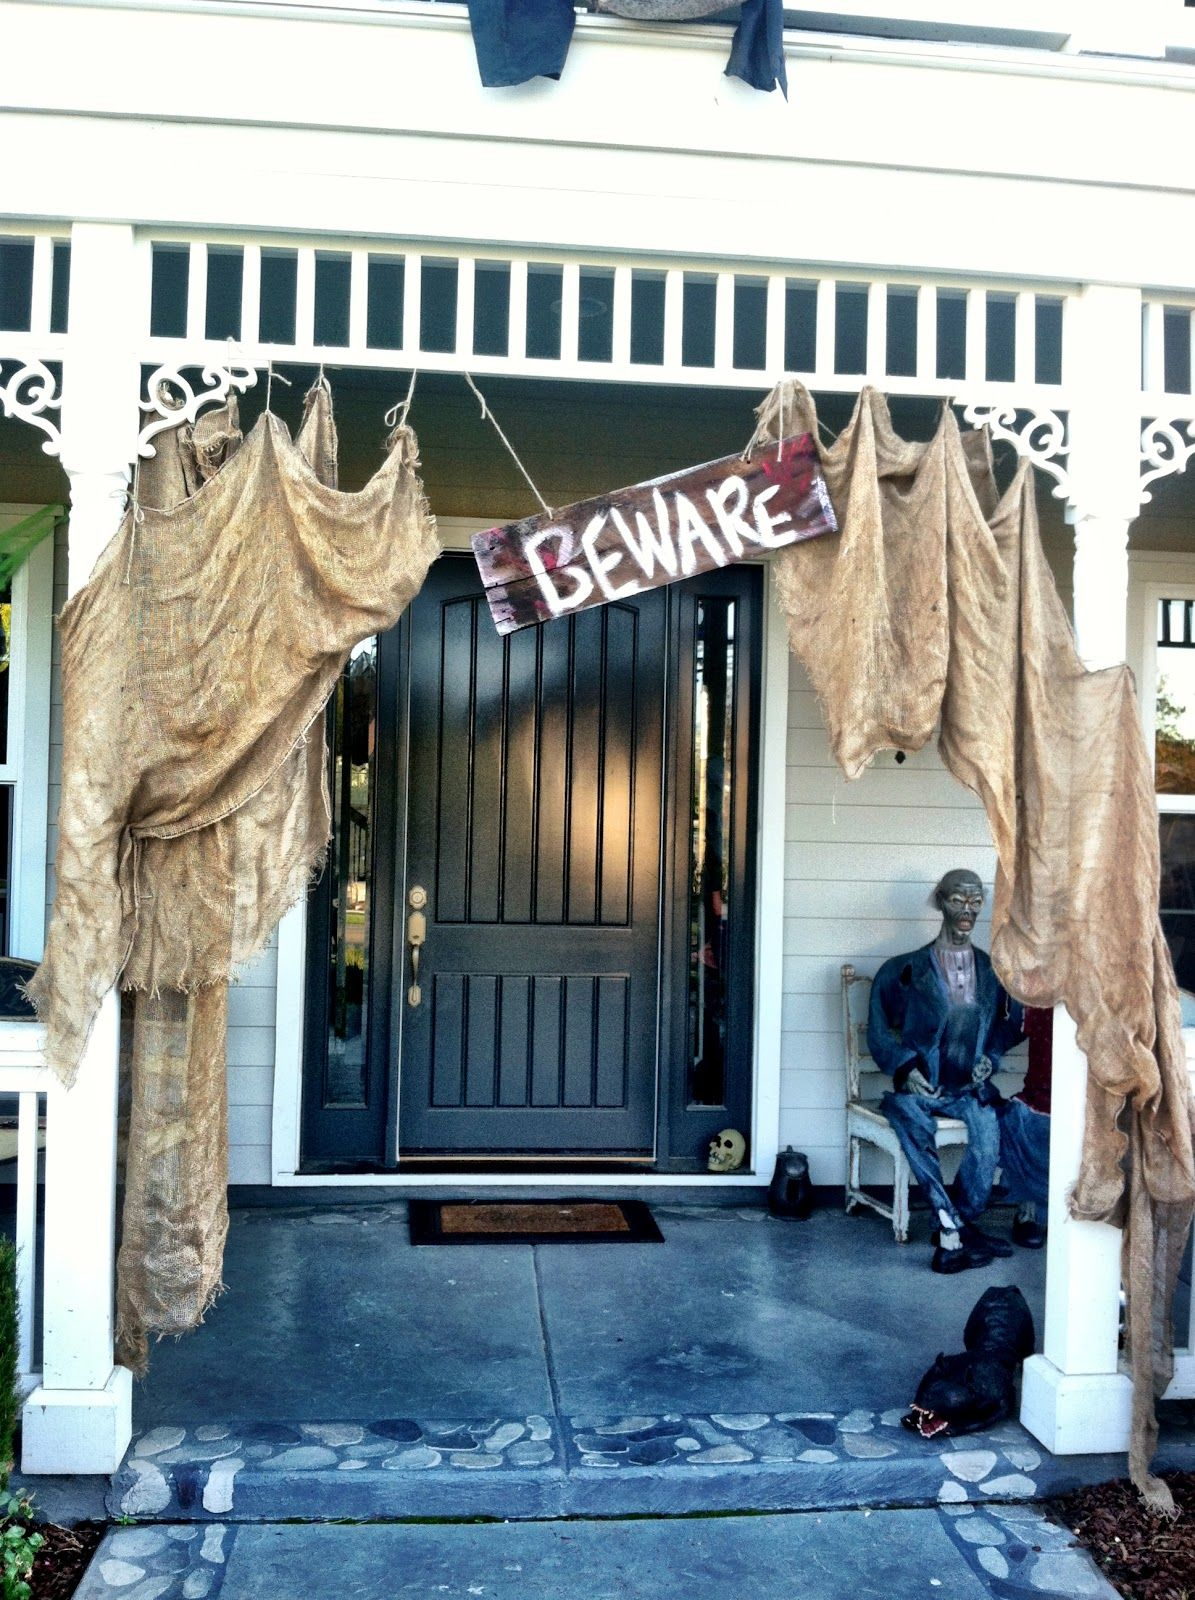 25 Halloween Porch Decorations Ideas Curb appeal, Halloween ideas - Halloween House Decorating Ideas Outside